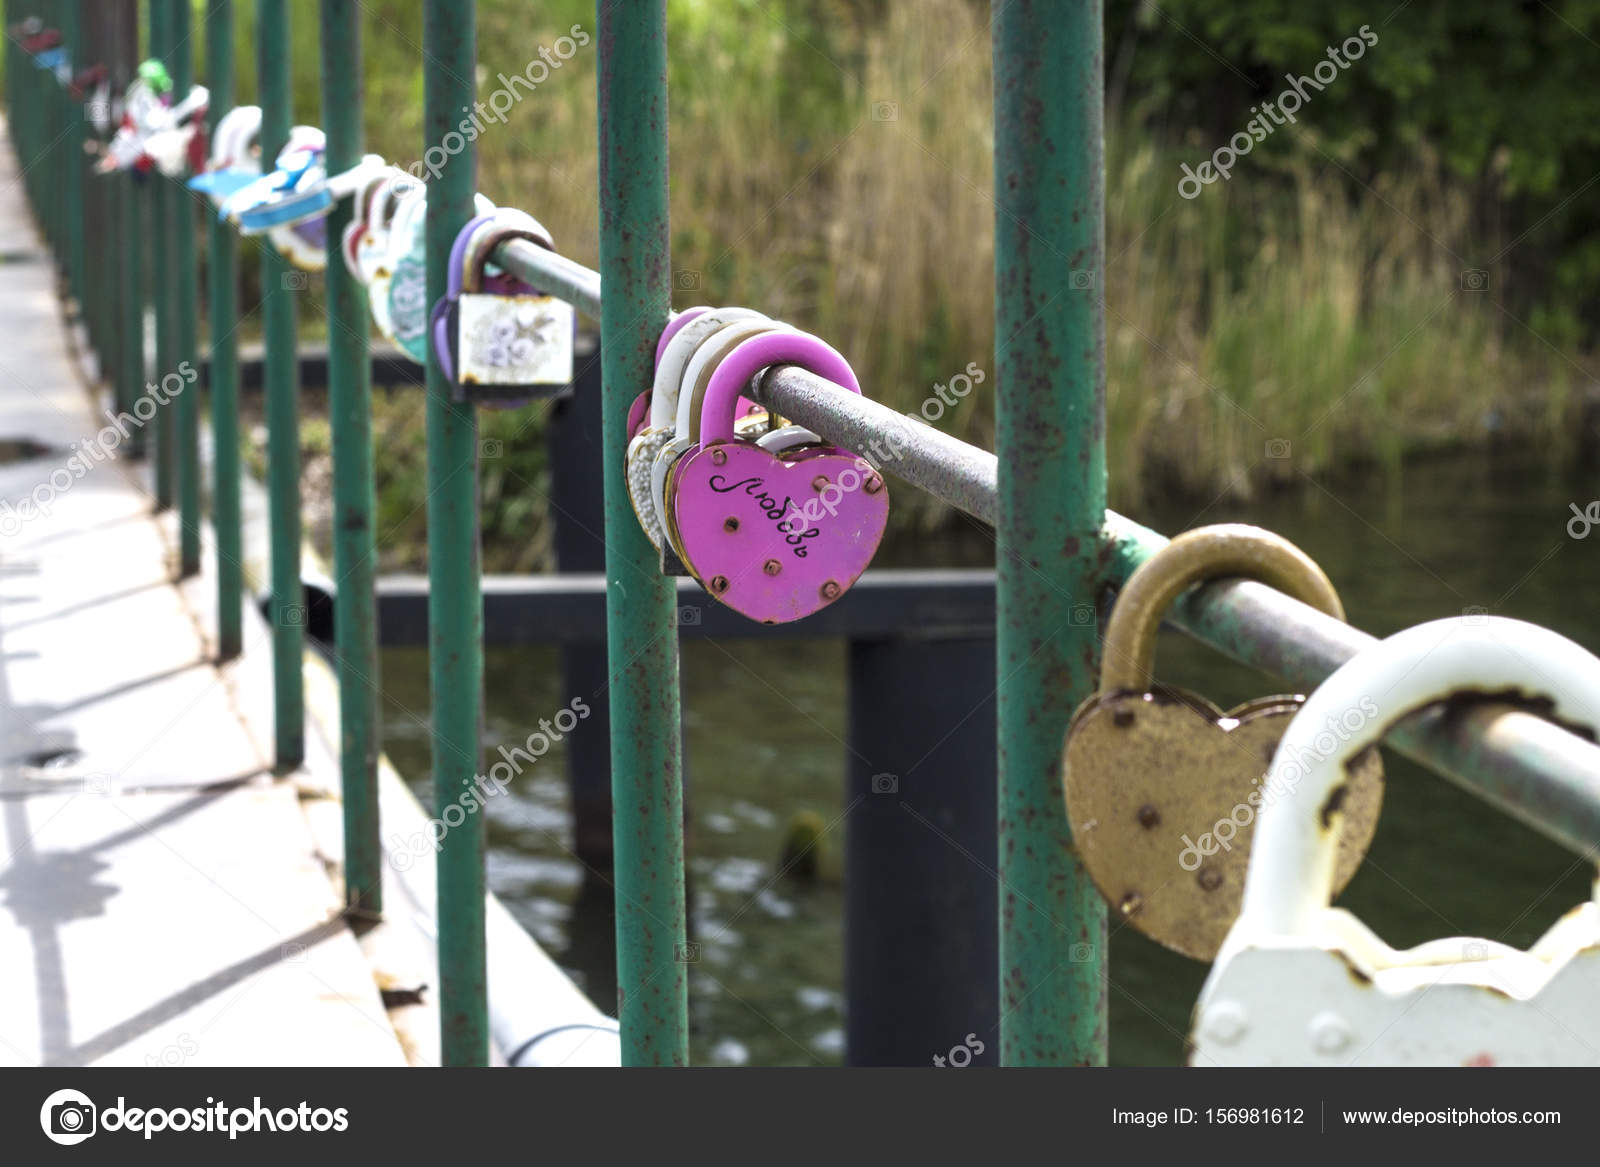 The Lock On The West On The Bridge As A Symbol Of Love Stock